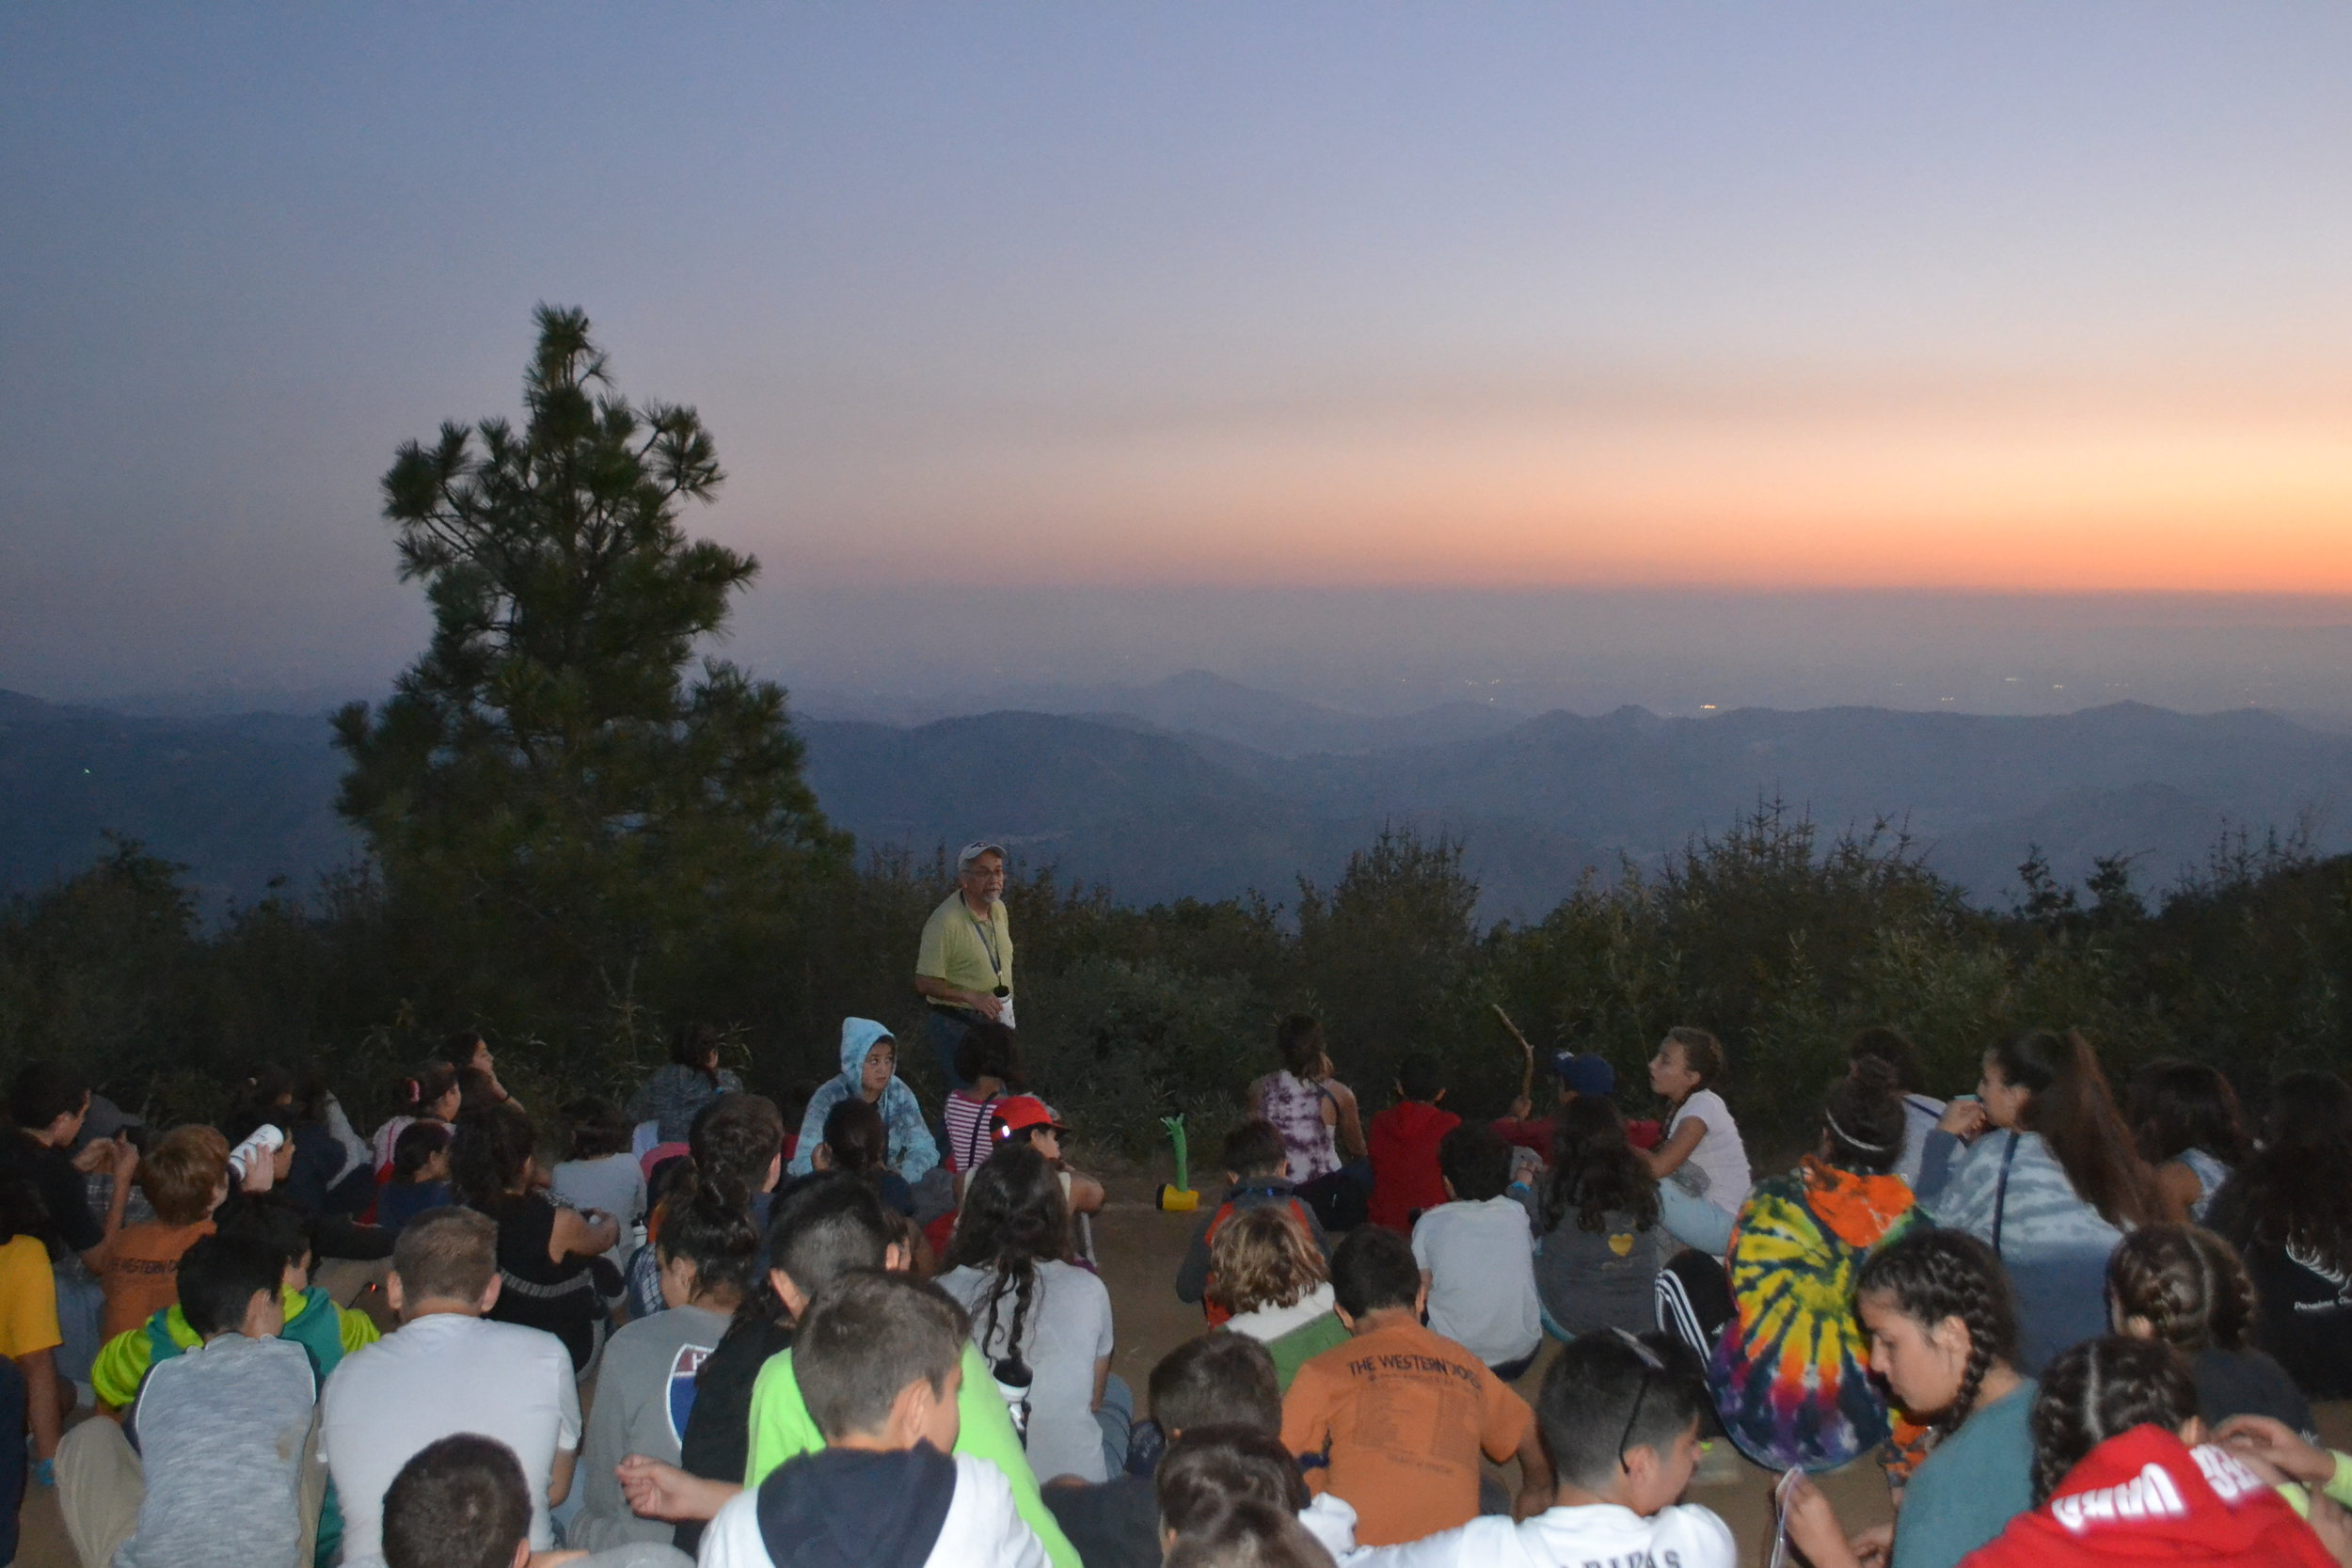 Der Sarkis gave a moving devotional on the top of the mountain overlooking the beautiful Central Valley